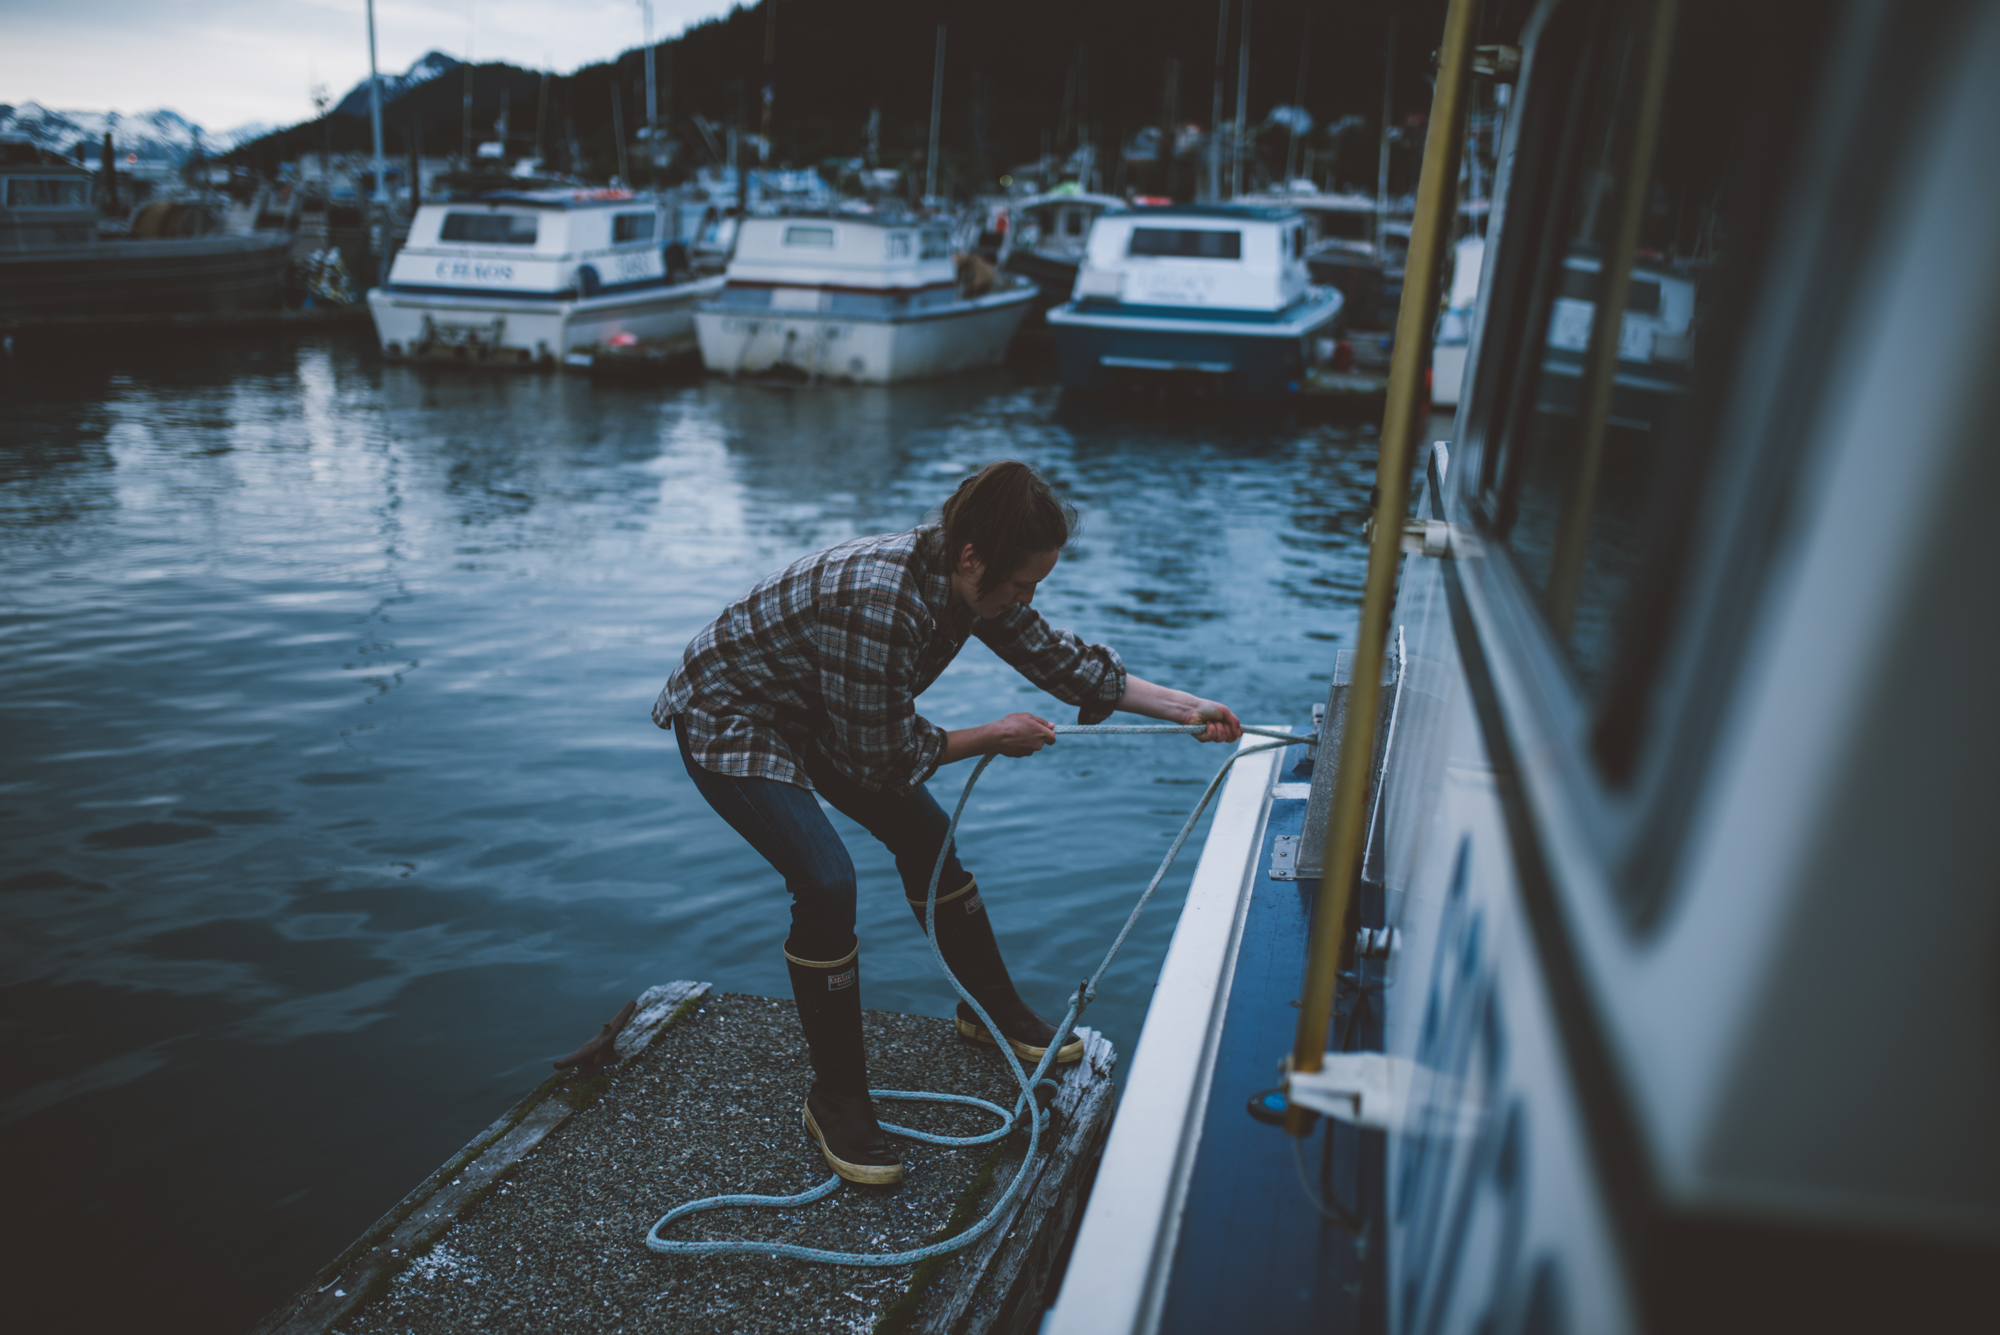 nelly hand tying off boat in harbor